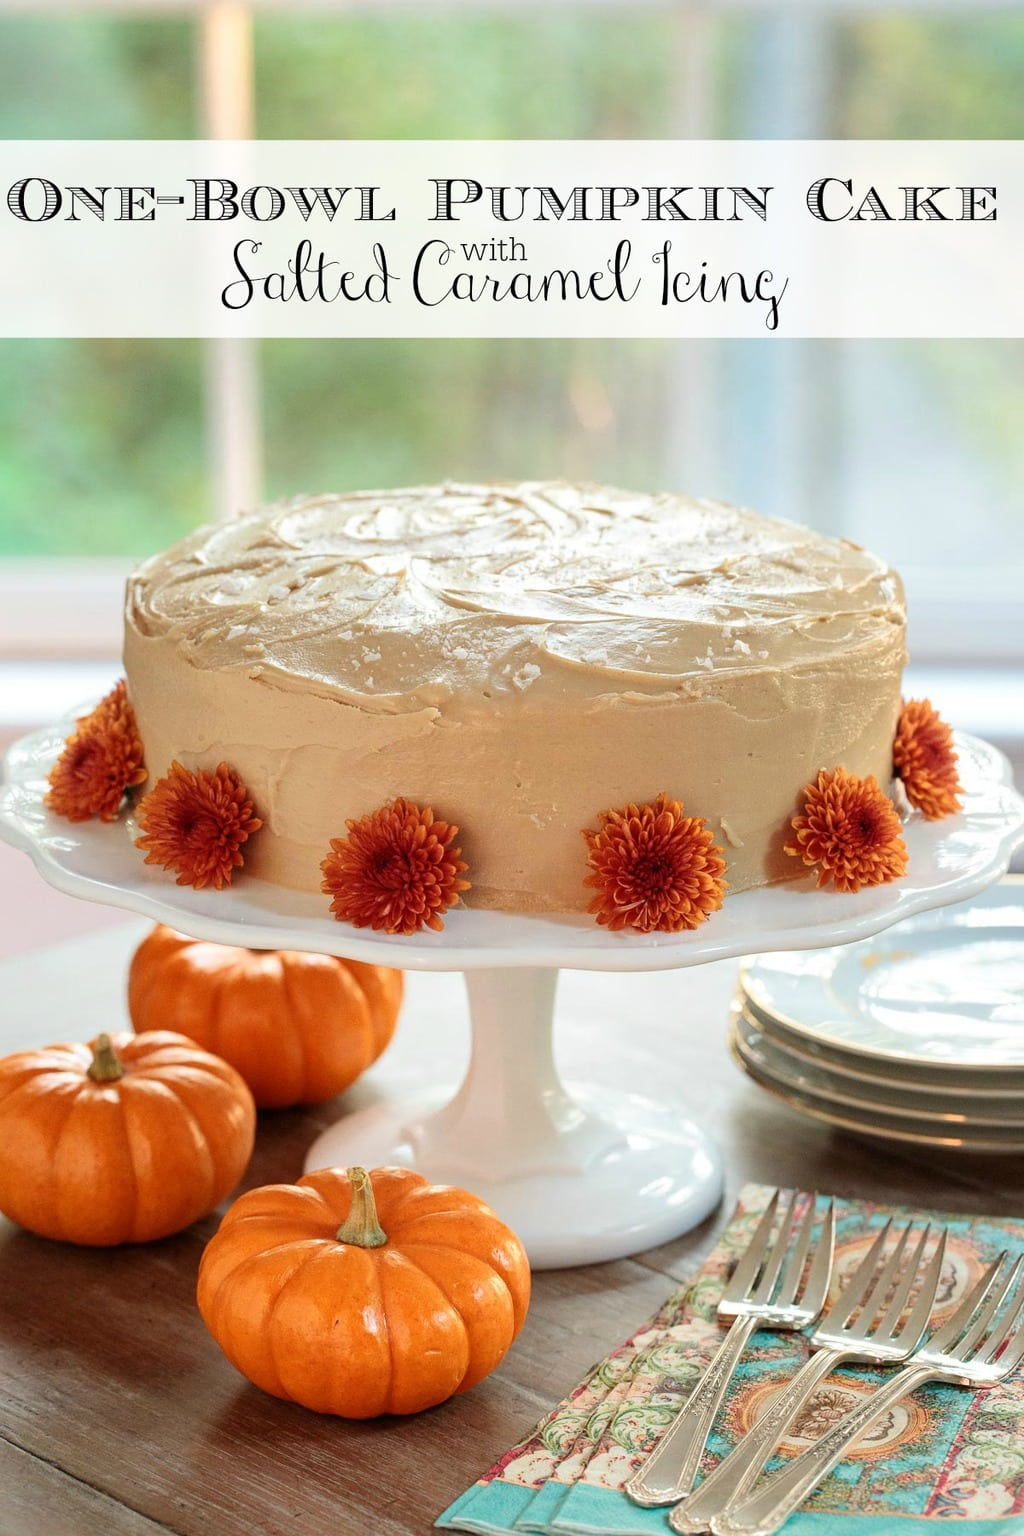 This moist, one-bowl pumpkin cake comes together in minutes. It\'s wonderful on its own but the salted caramel icing takes it to nirvana status! #pumpkincake, #onebowlpumpkincake, #easypumkincake, #saltedcaramelicing